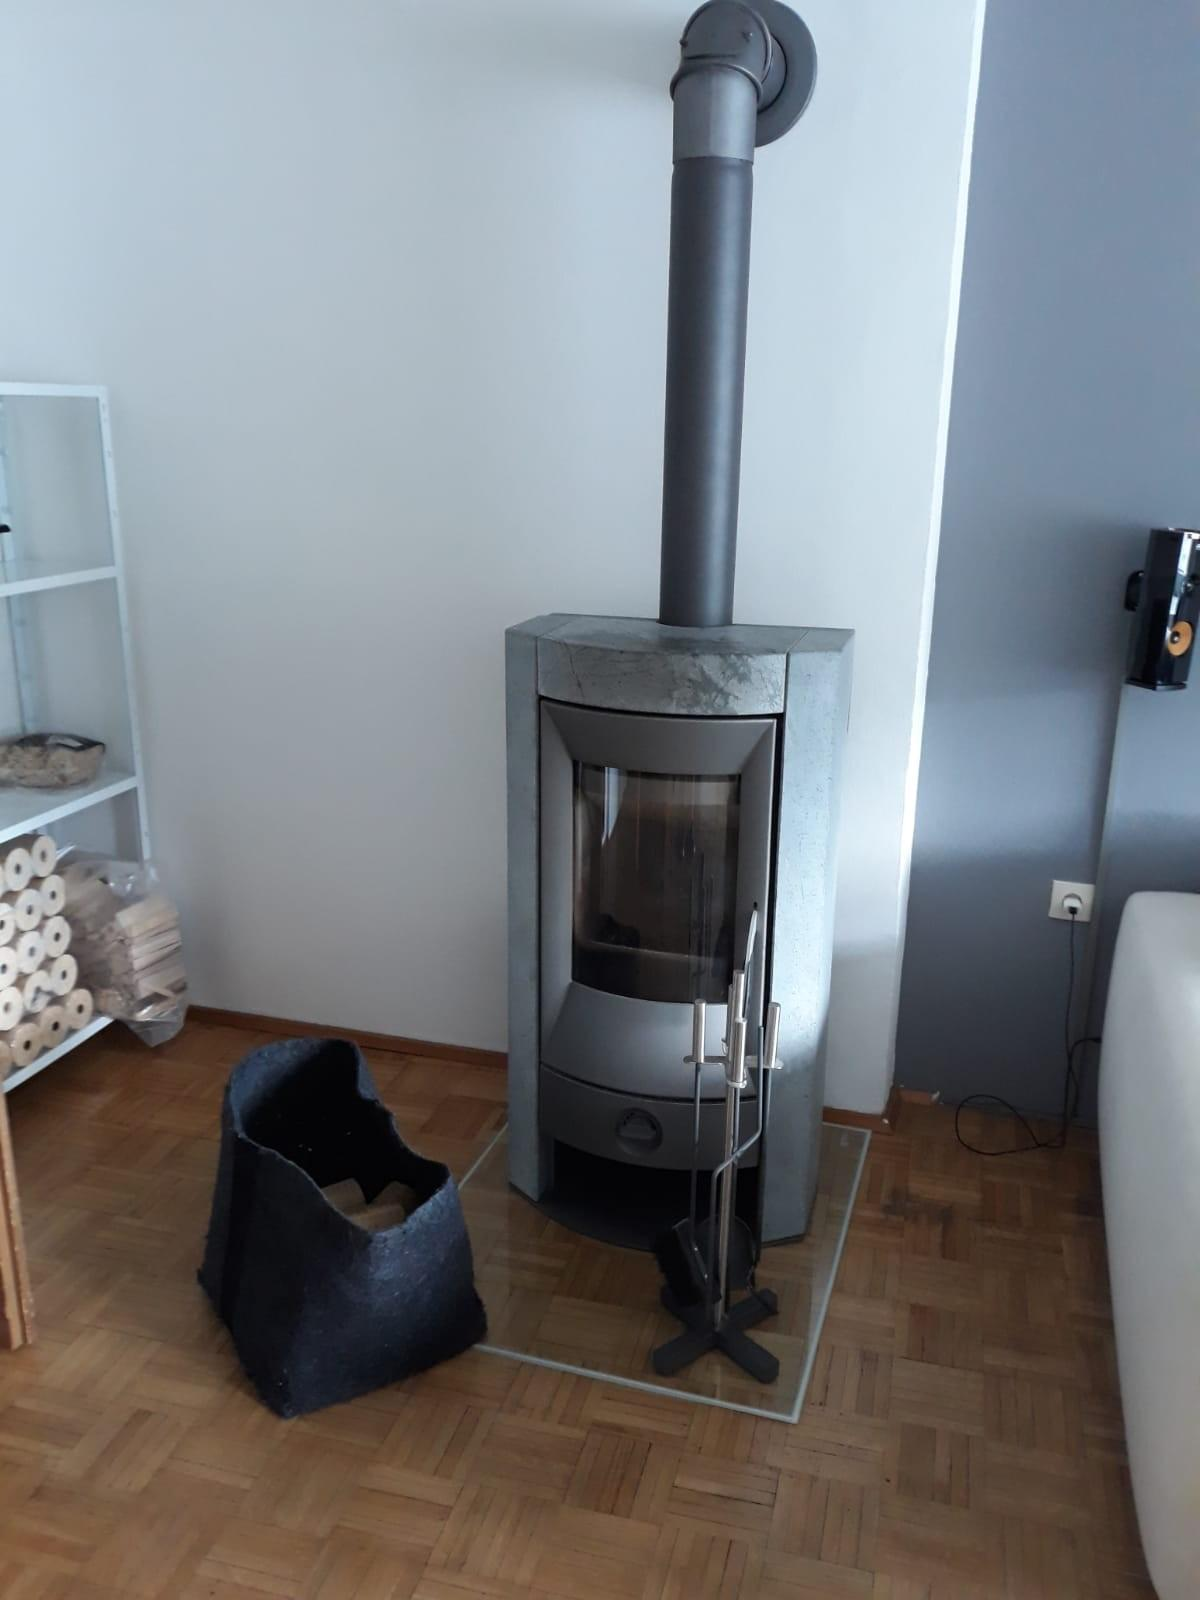 Kaminofen Rika Fox Ii Kaminofen In 39031 Bruneck For 1 400 00 For Sale Shpock